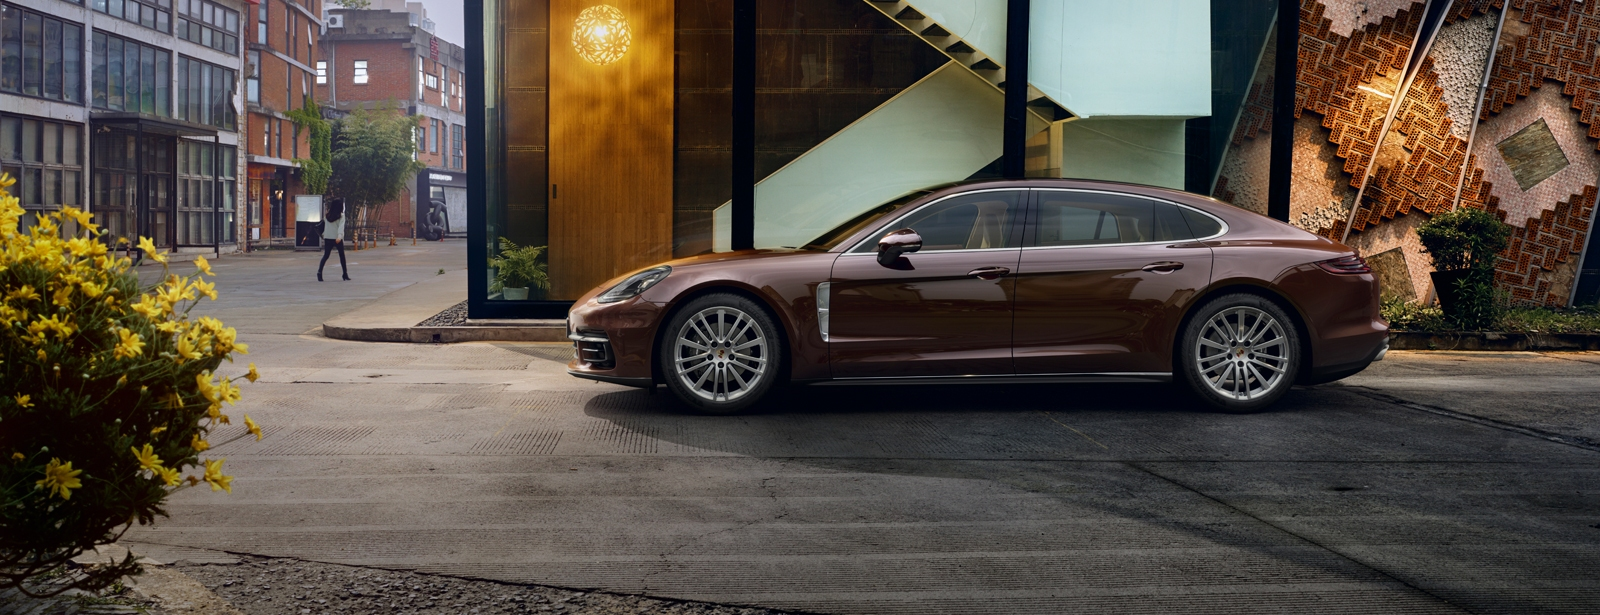 Porsche - Panamera 4 Executive - Courage changes everything.